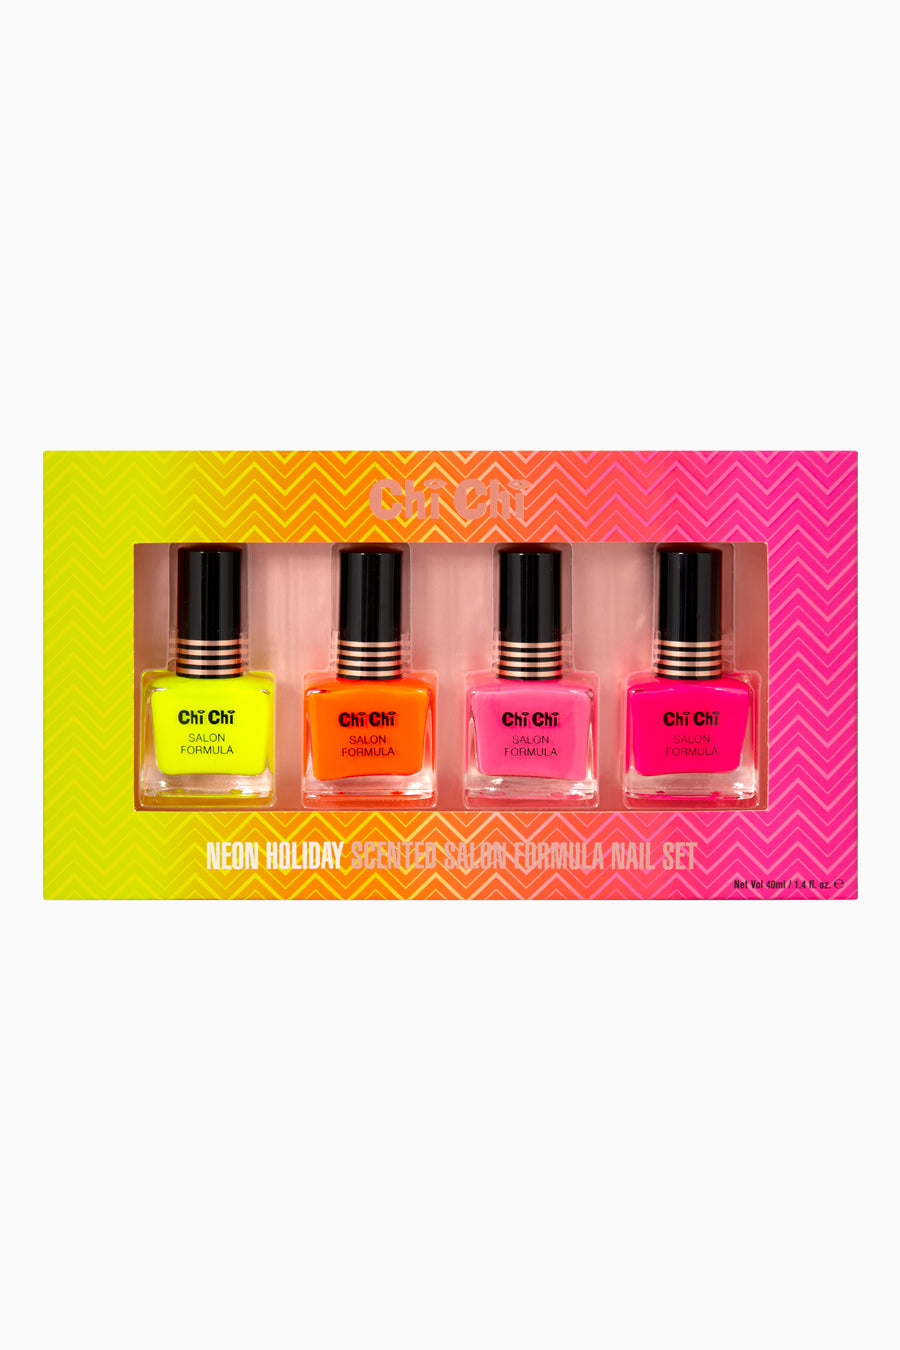 Neon Holiday - Salon Formula Nail Set